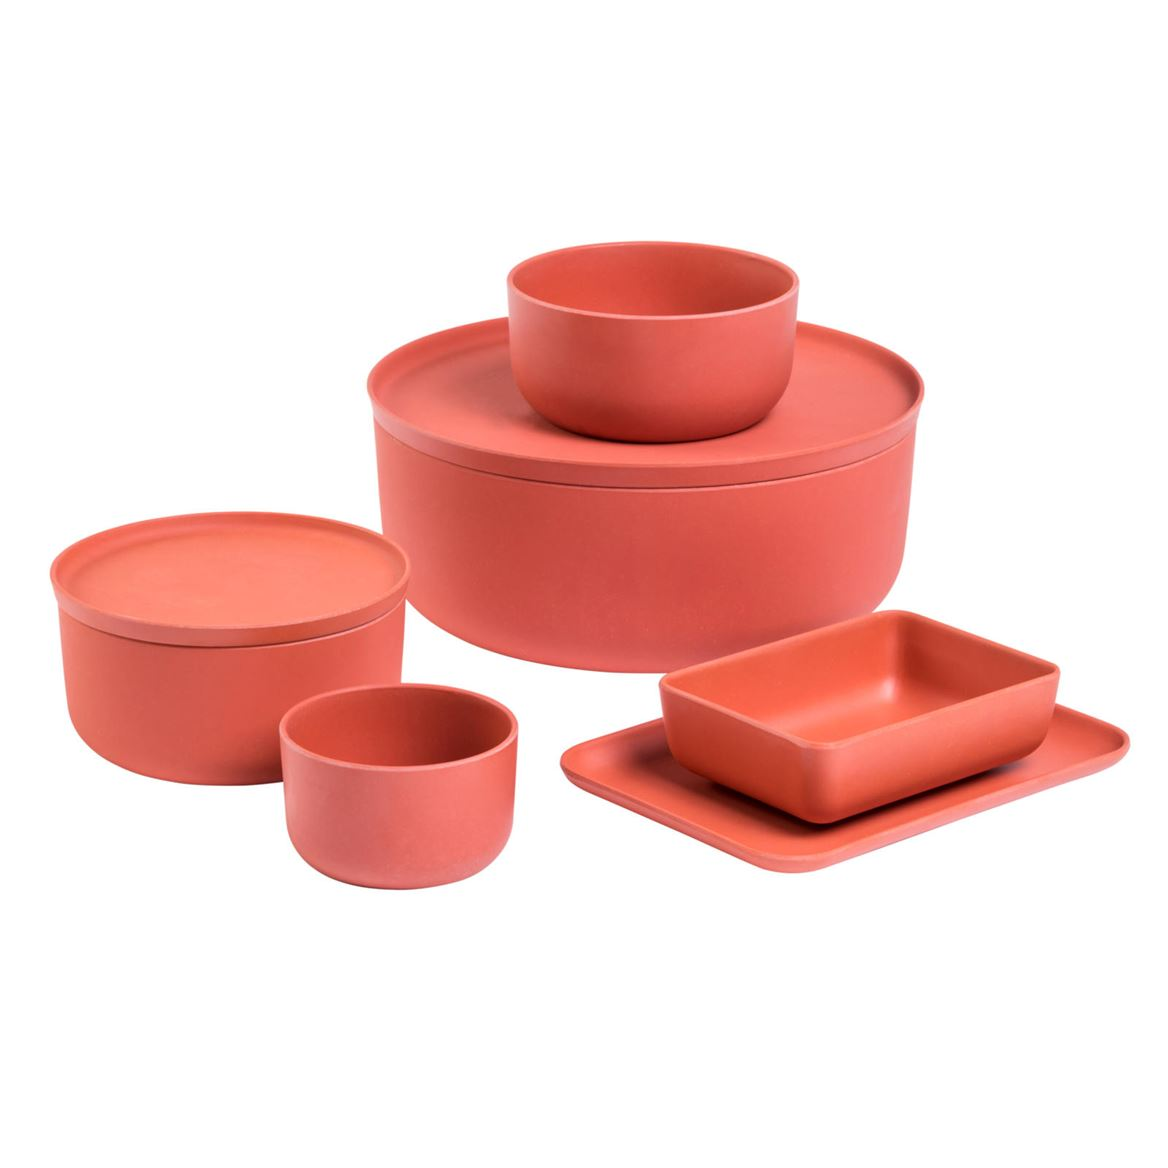 ELEMENTS Assiette orange H 1.8 x Larg. 16 x P 10 cm_elements-assiette-orange-h-1-8-x-larg--16-x-p-10-cm